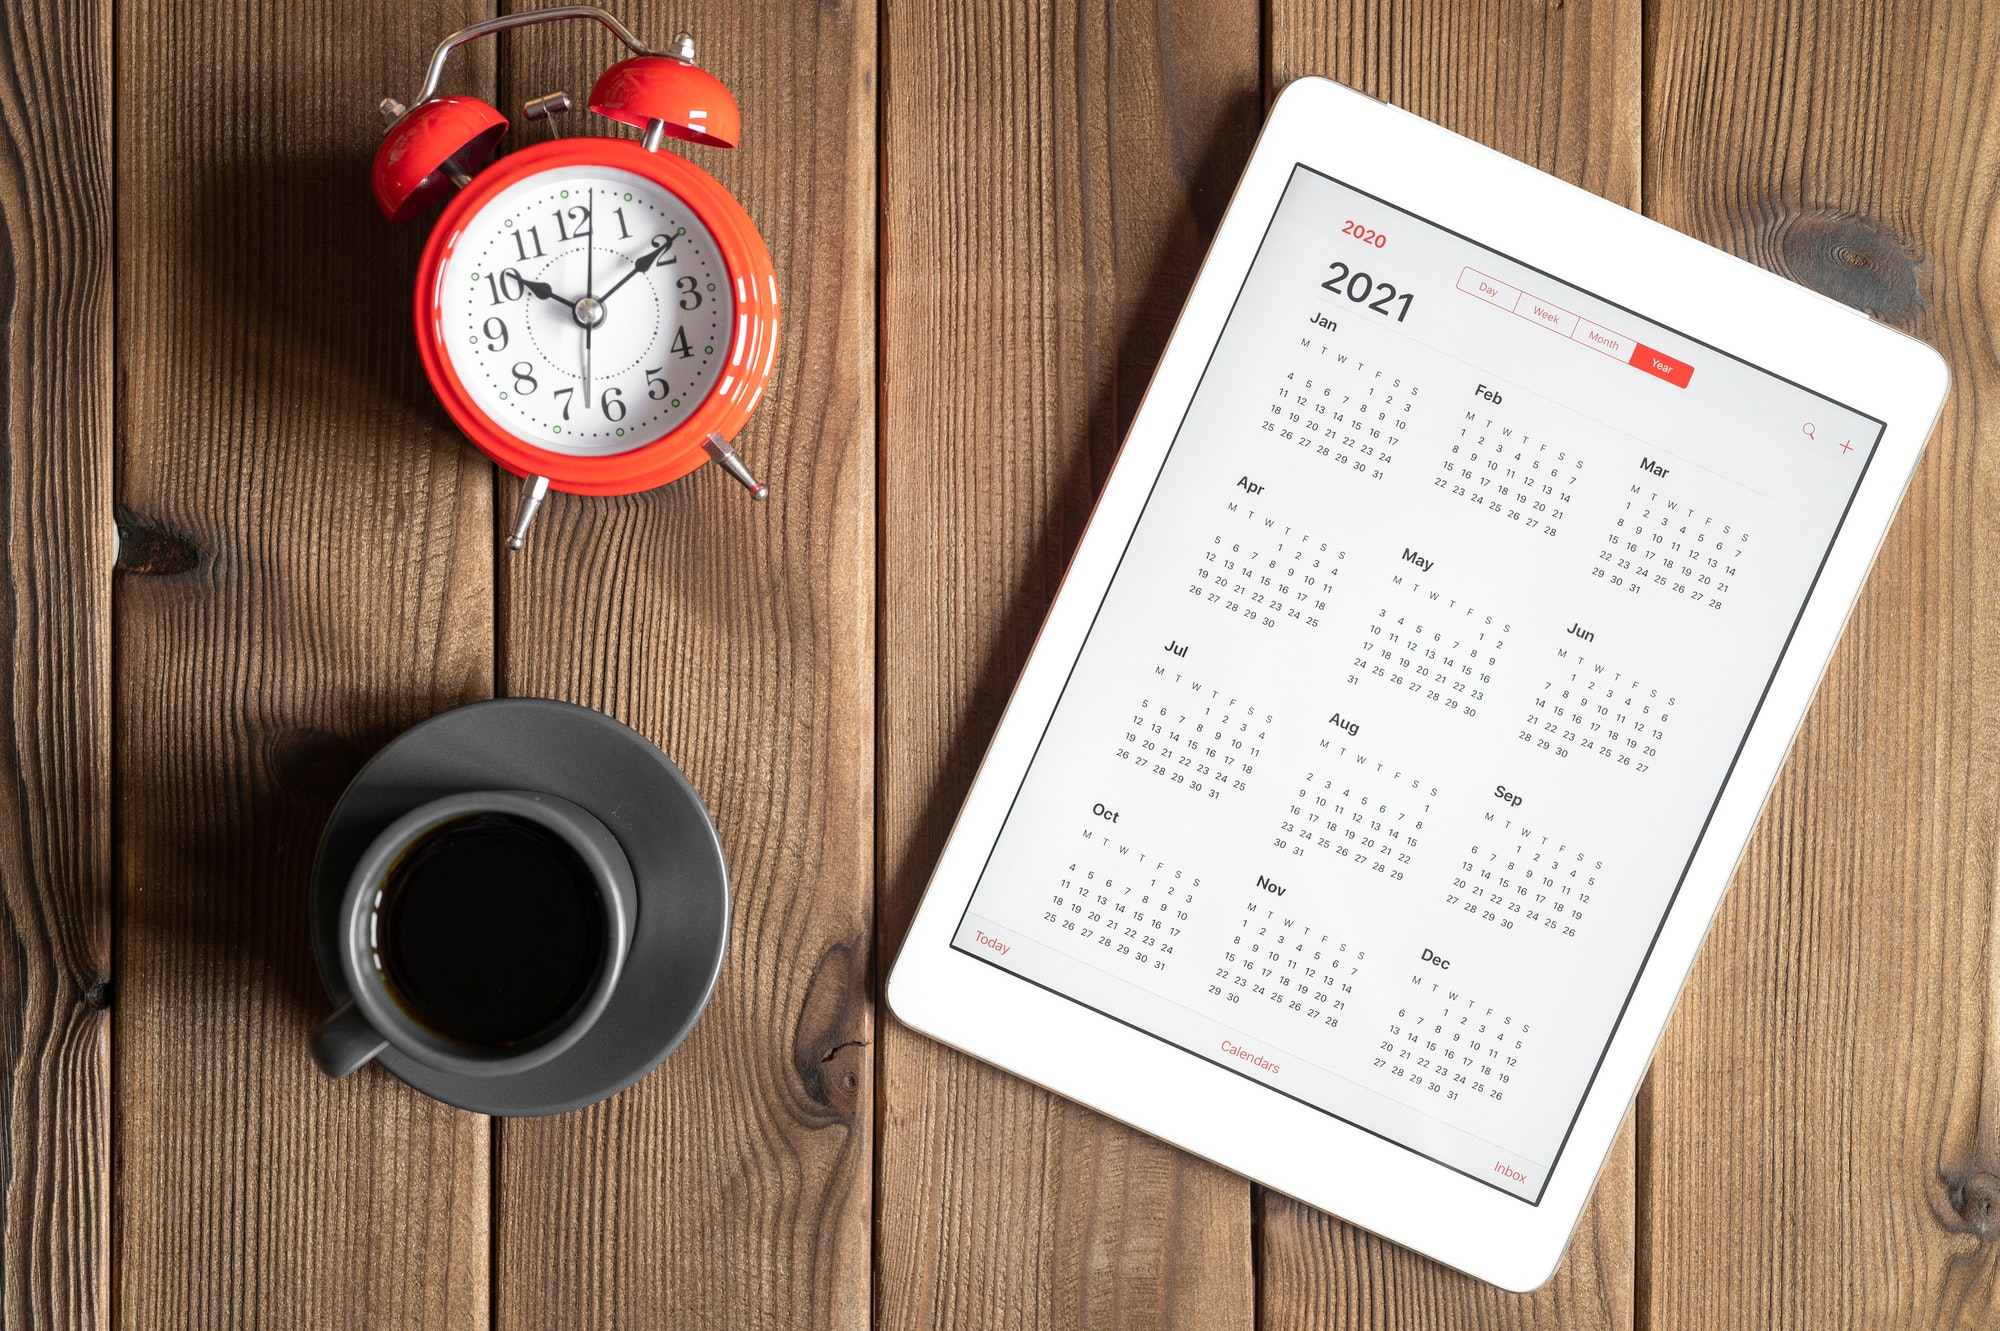 tablet with calendar for 2021, a cup of coffee and a red alarm clock on a wooden background flat lay